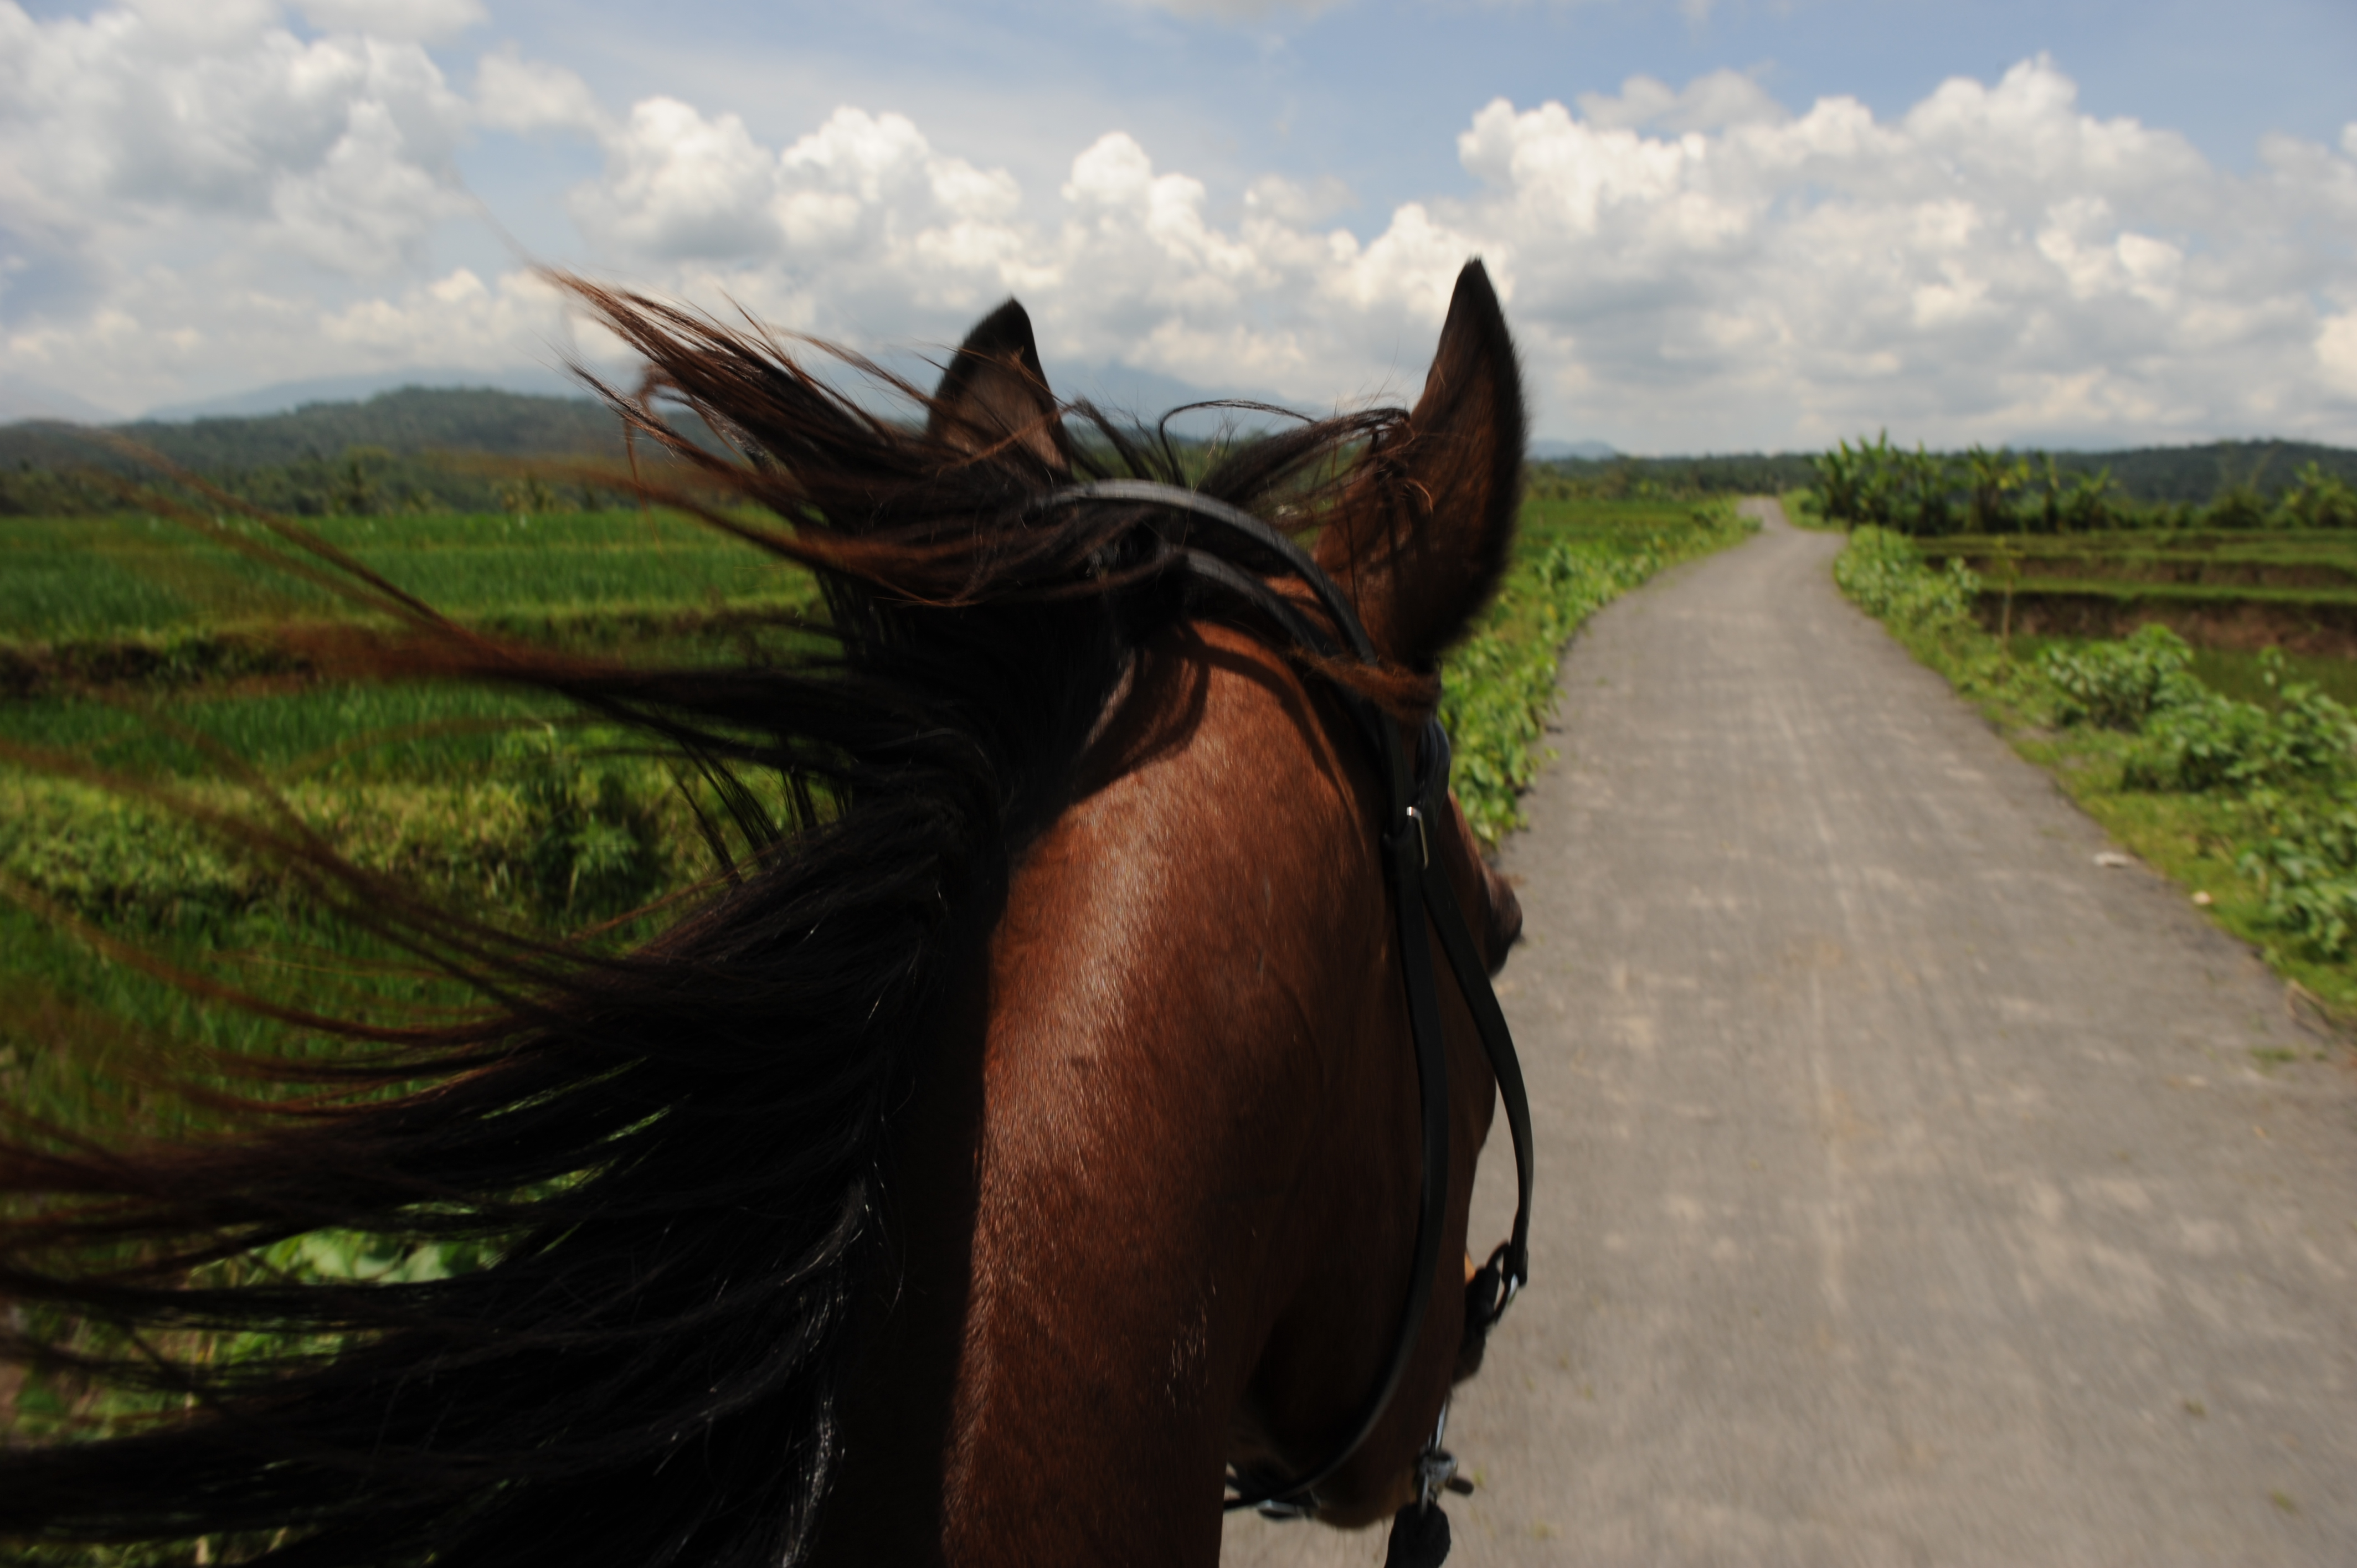 Exciting trail rides on horseback